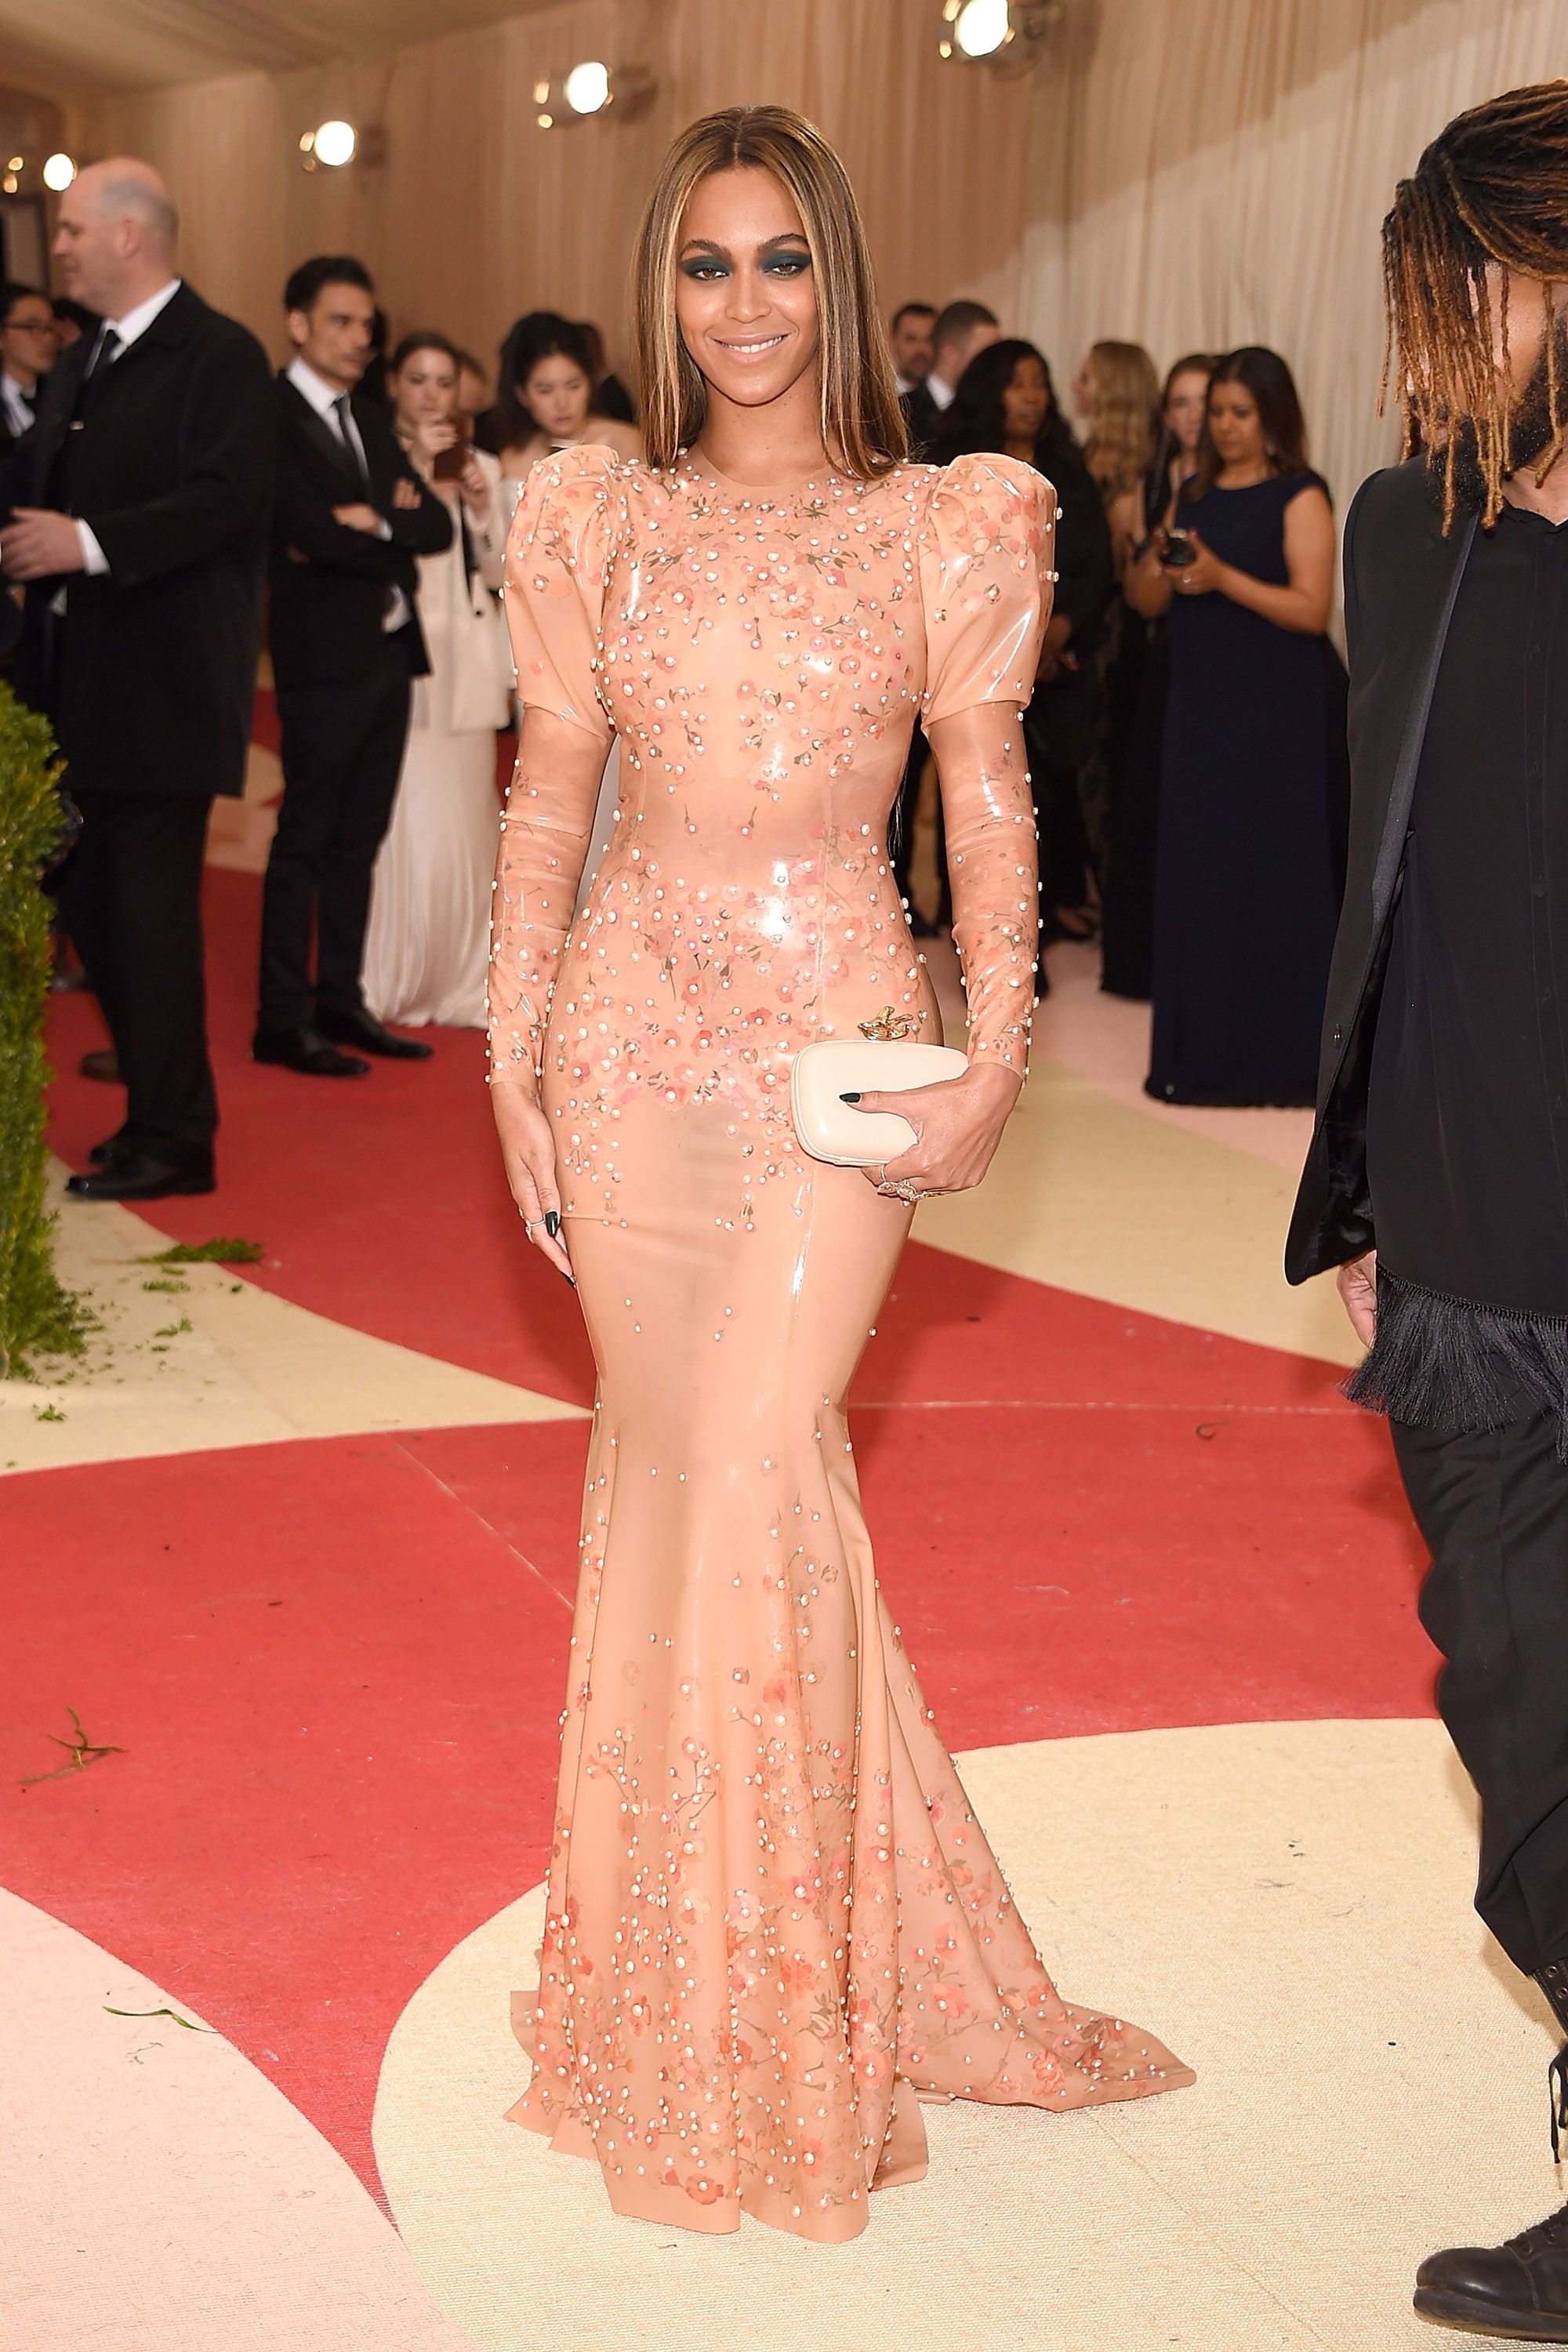 Red Carpet Dresses at Met Gala 2016 - Dresses and Gowns From the Met ...